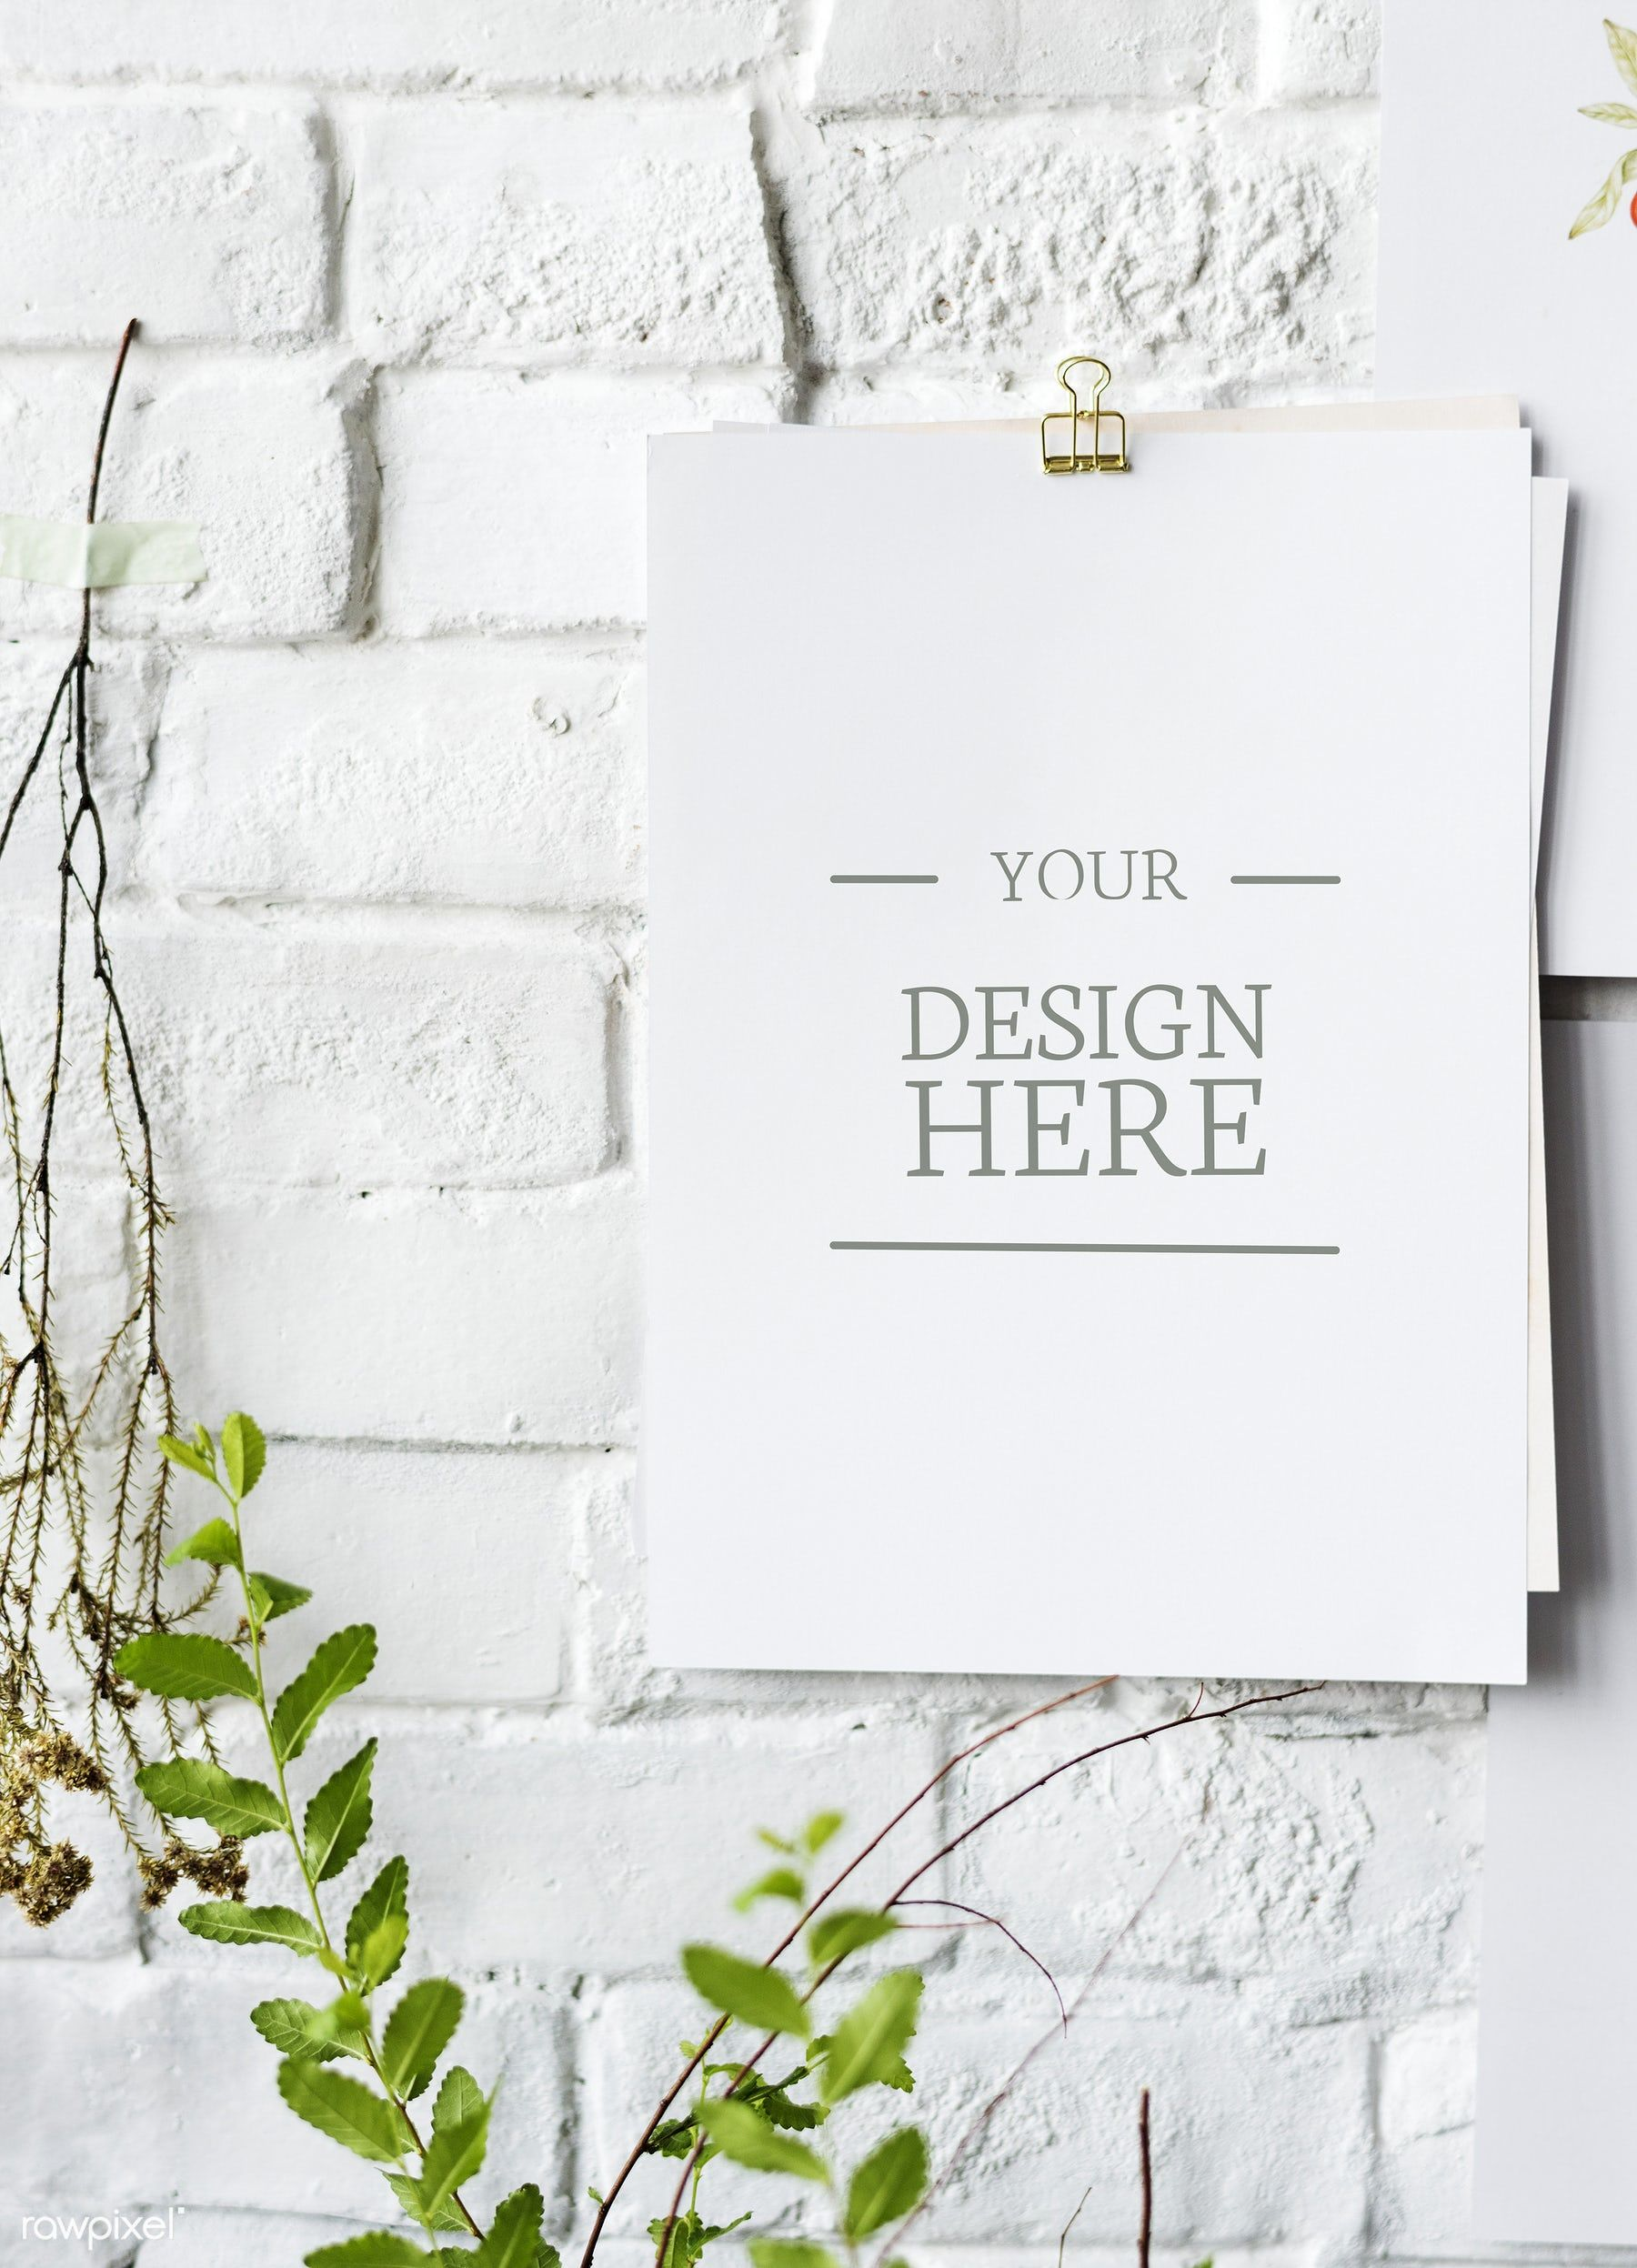 Download Premium Psd Of Mockup White Paper On White Brick Wall 295917 White Brick White Brick Walls Brick Wall